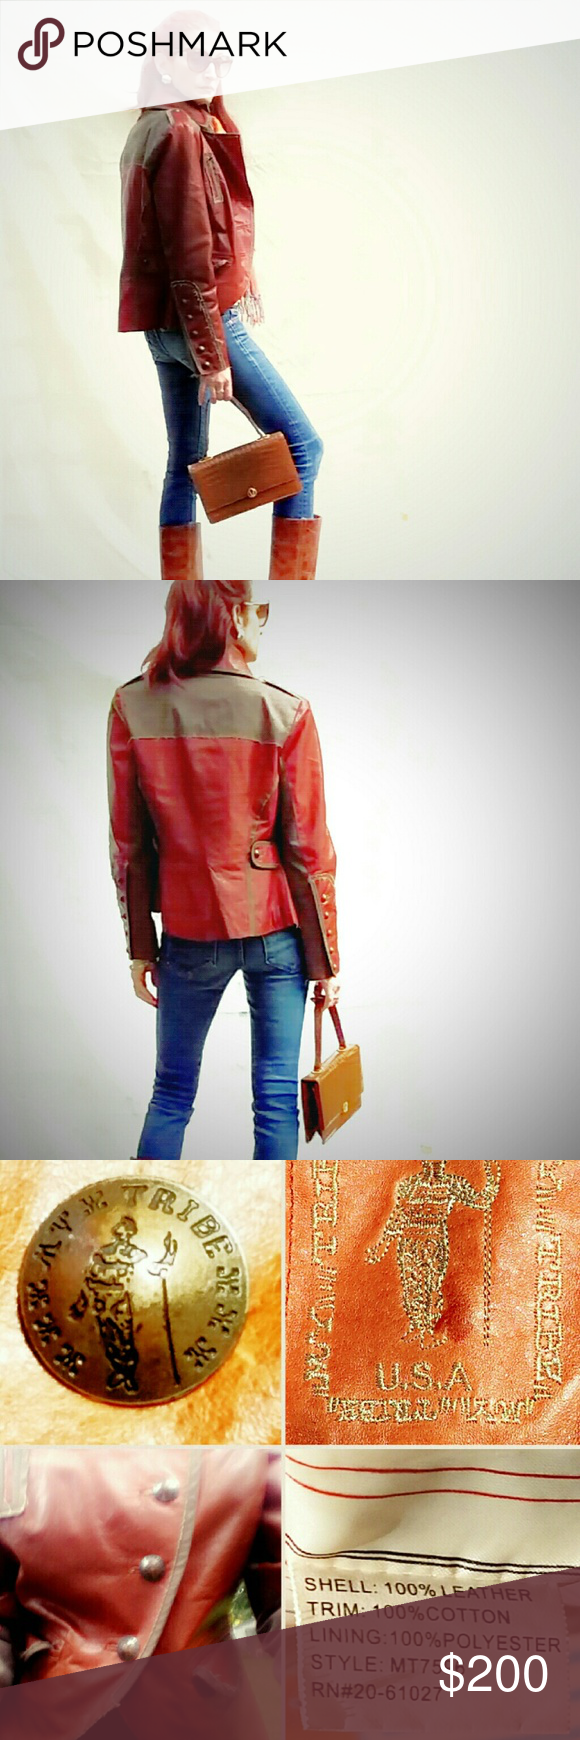 """My Tribe Rust Leather Moto/Military Jacket My Tribe Rust Leather Moto/Military Jacket. This killer leather moto/military jacket is detailed with raw-edged fabric piping, metal buttons, and a super slick lining.  It's in perfect condition & ready to rock! Bust measures 18"""" laying flat and buttoned; length is approx 23."""" My Tribe Jackets & Coats"""